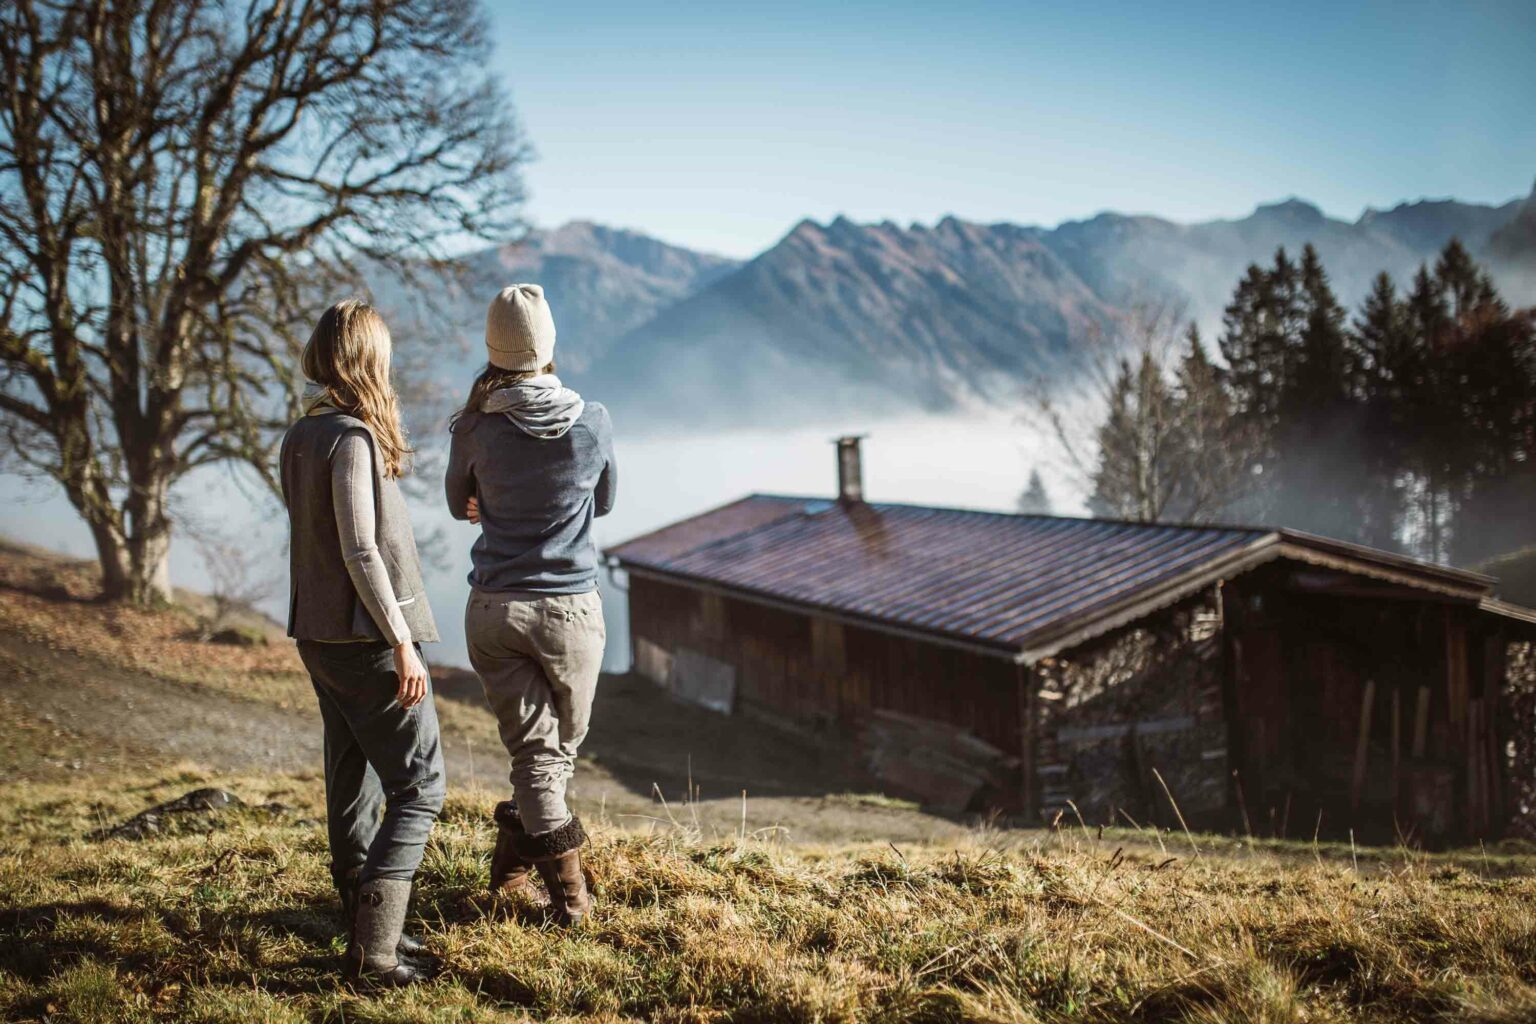 Grenzgang Südtirol Allgäu Fair Organic Fashion Alpin Lifestyle ethical sustainable nachhaltig